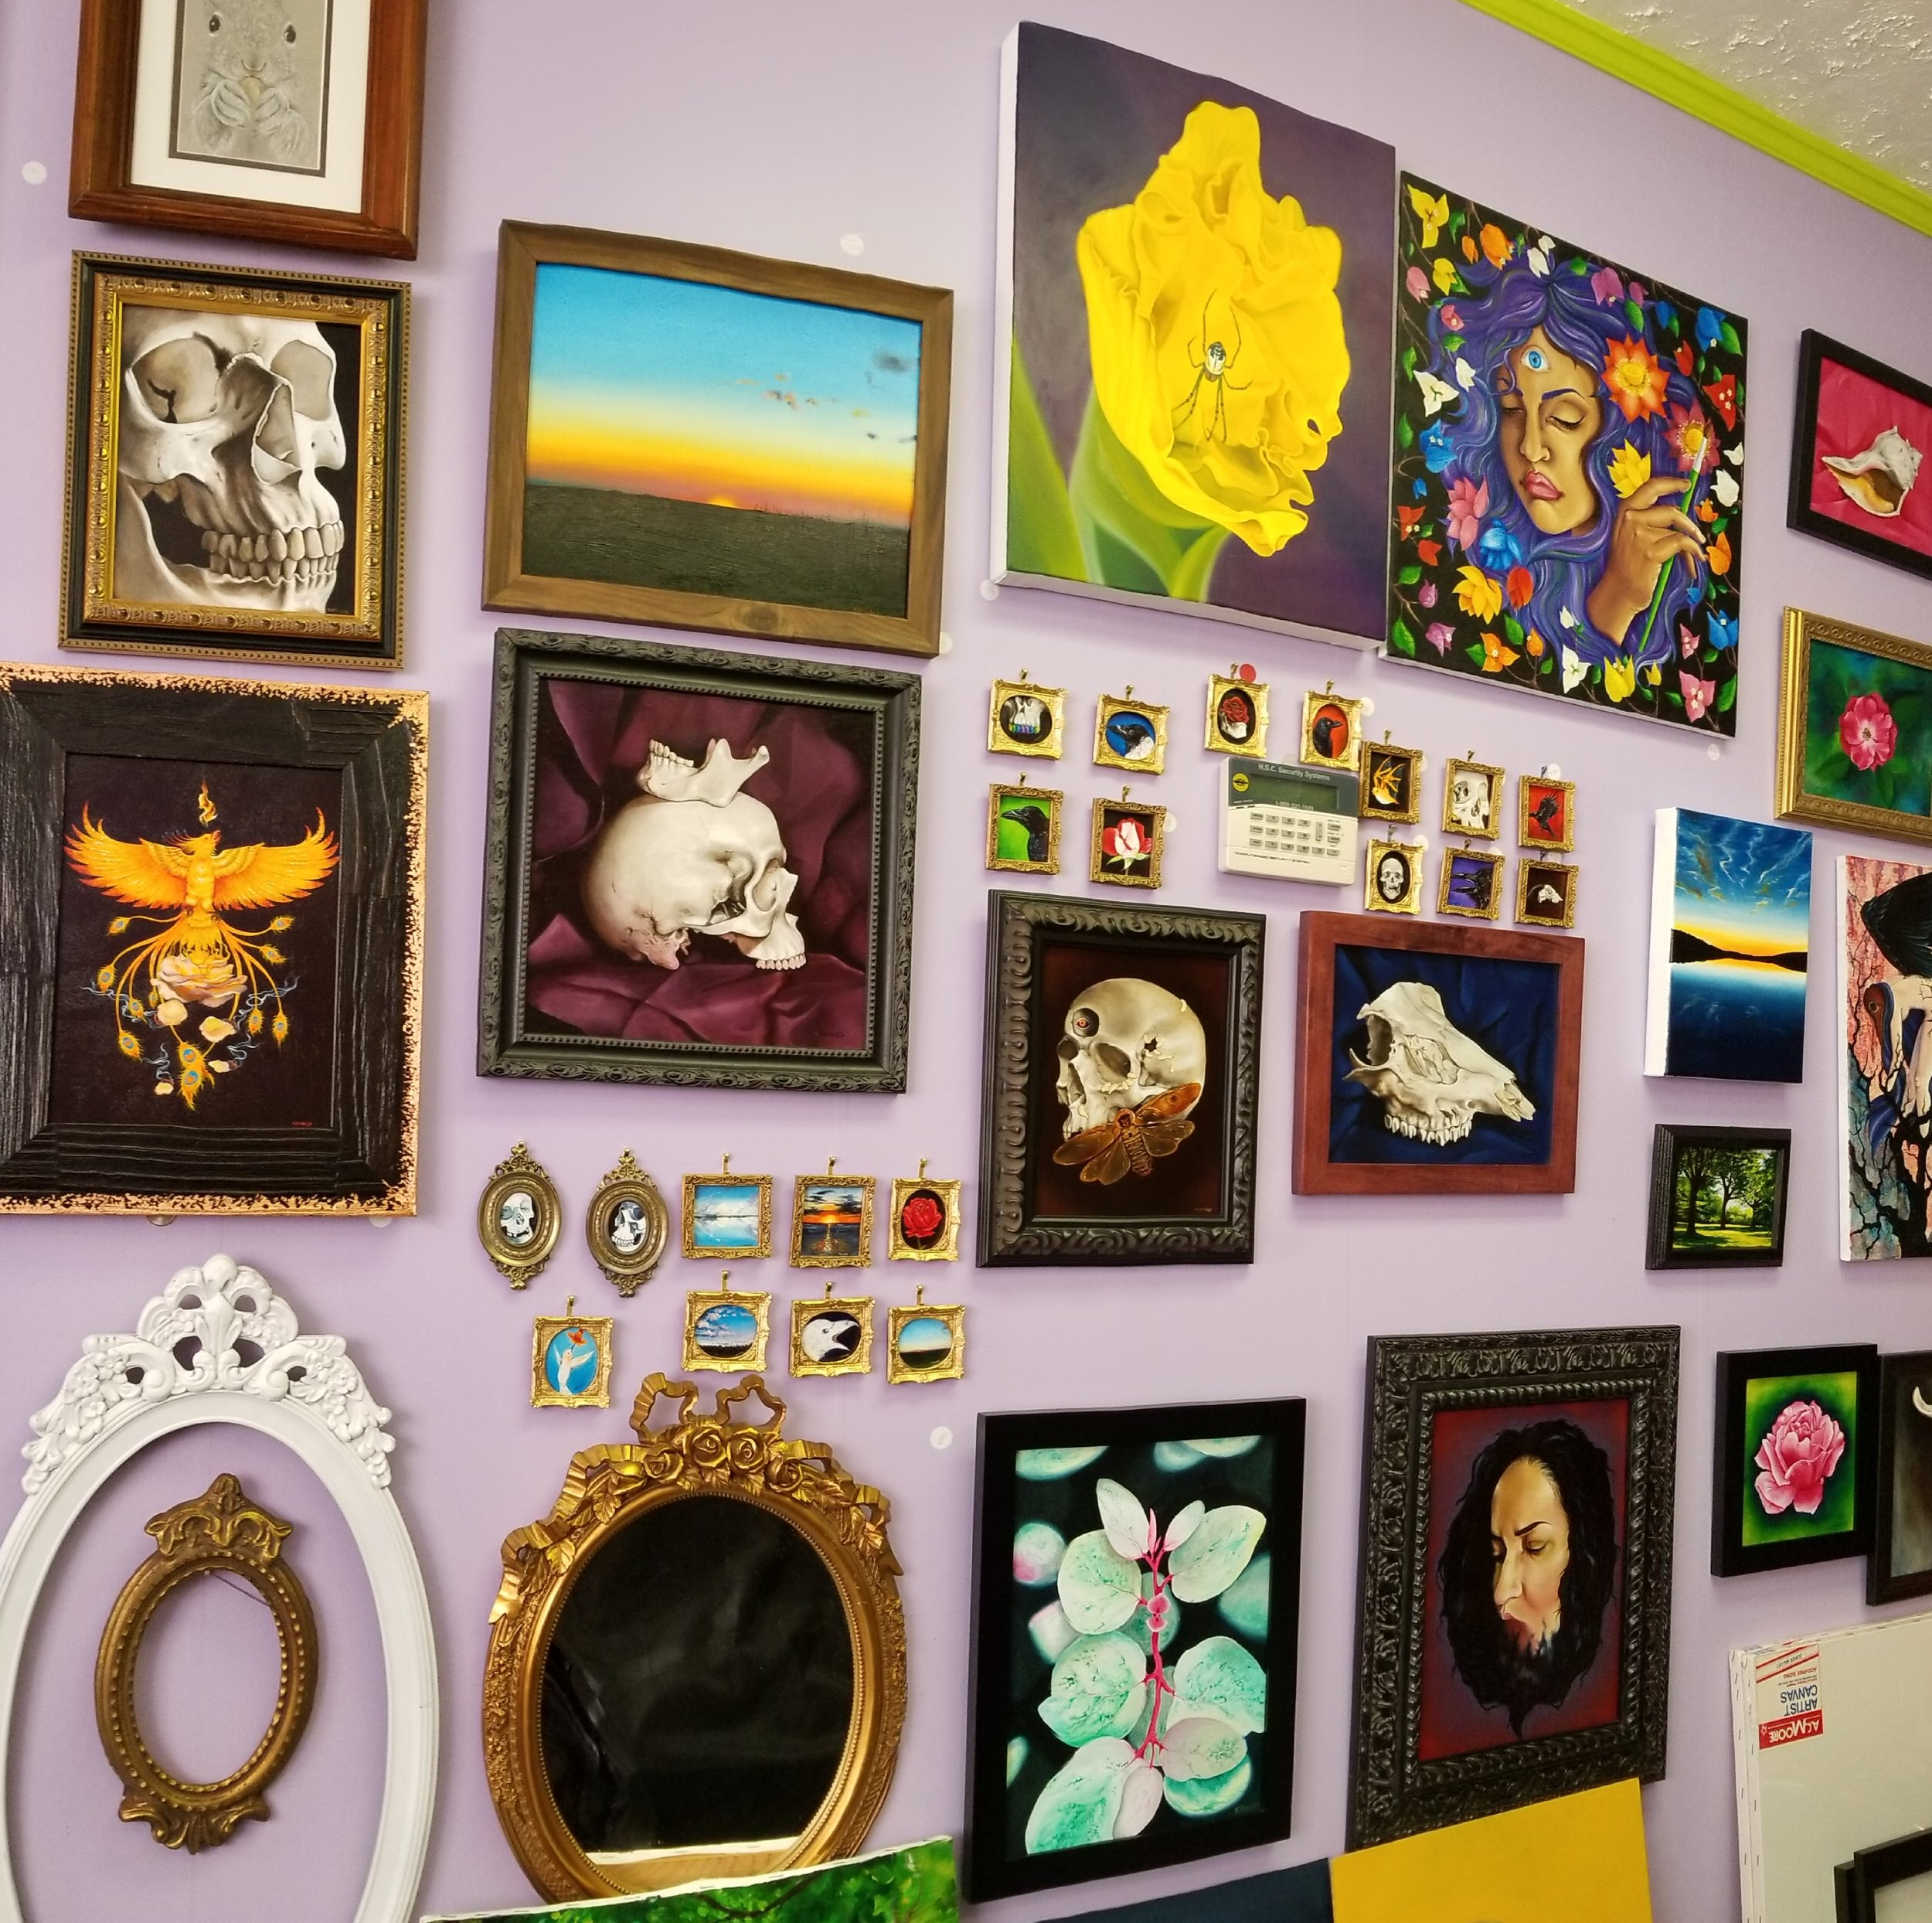 This is a wall in my studio, which is adjacent to the gallery.  There is a doorway that leads to this room.